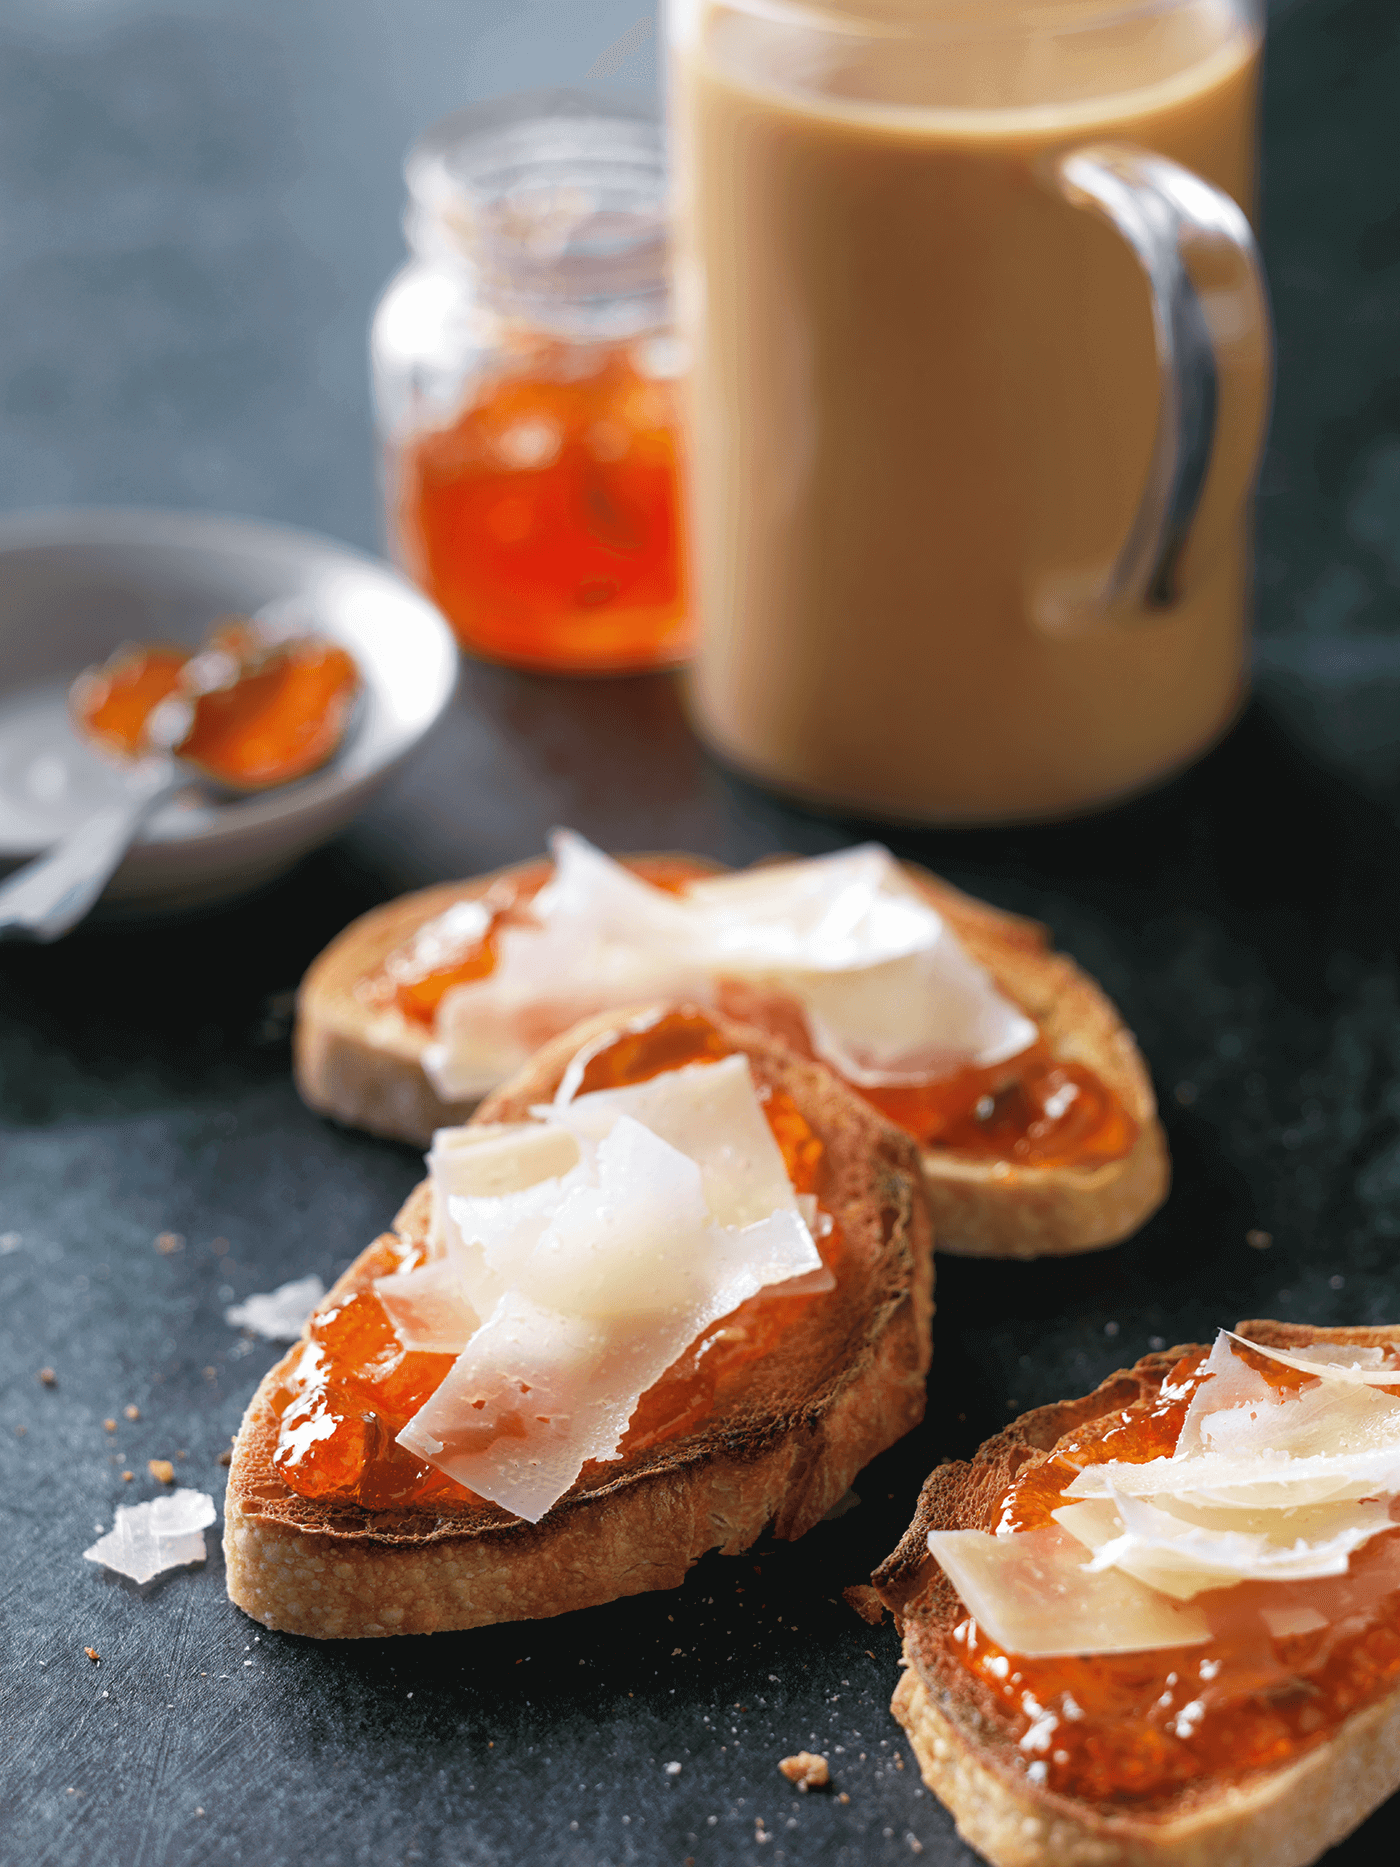 Padma Lakshmi's Toast with Manchego Cheese & Spicy Jam: Rich, buttery manchego and a kick of pepper jam are grounded by the classic crunch of toast. Pair with a sweet and spicy cup of chai to warm up any afternoon. Click through for this  recipe and more delicious chai latte pairings.